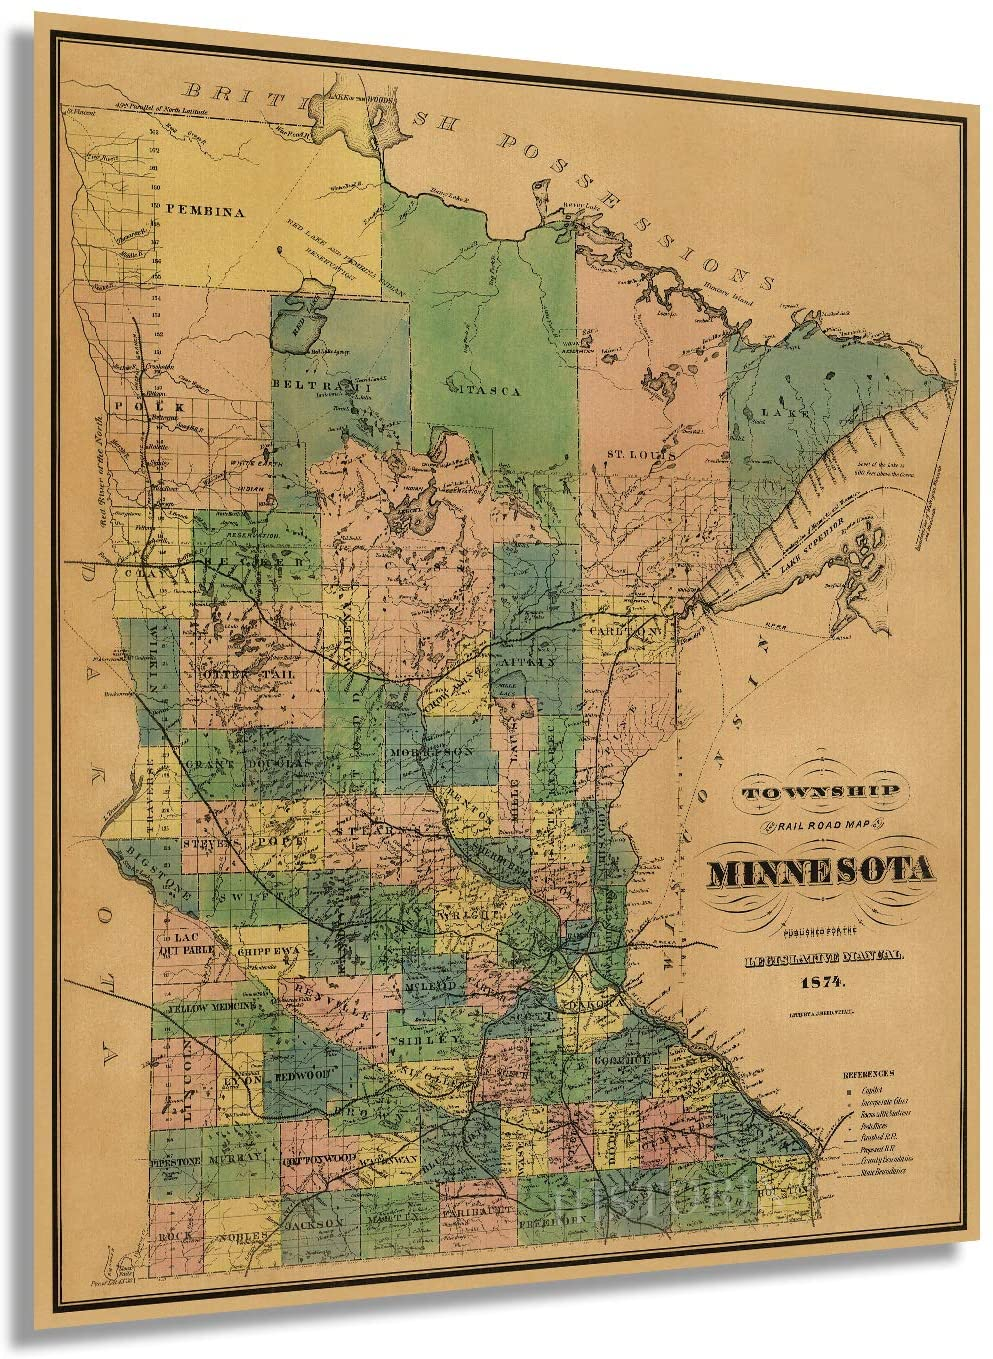 1874 Township and railroad map of Minnesota